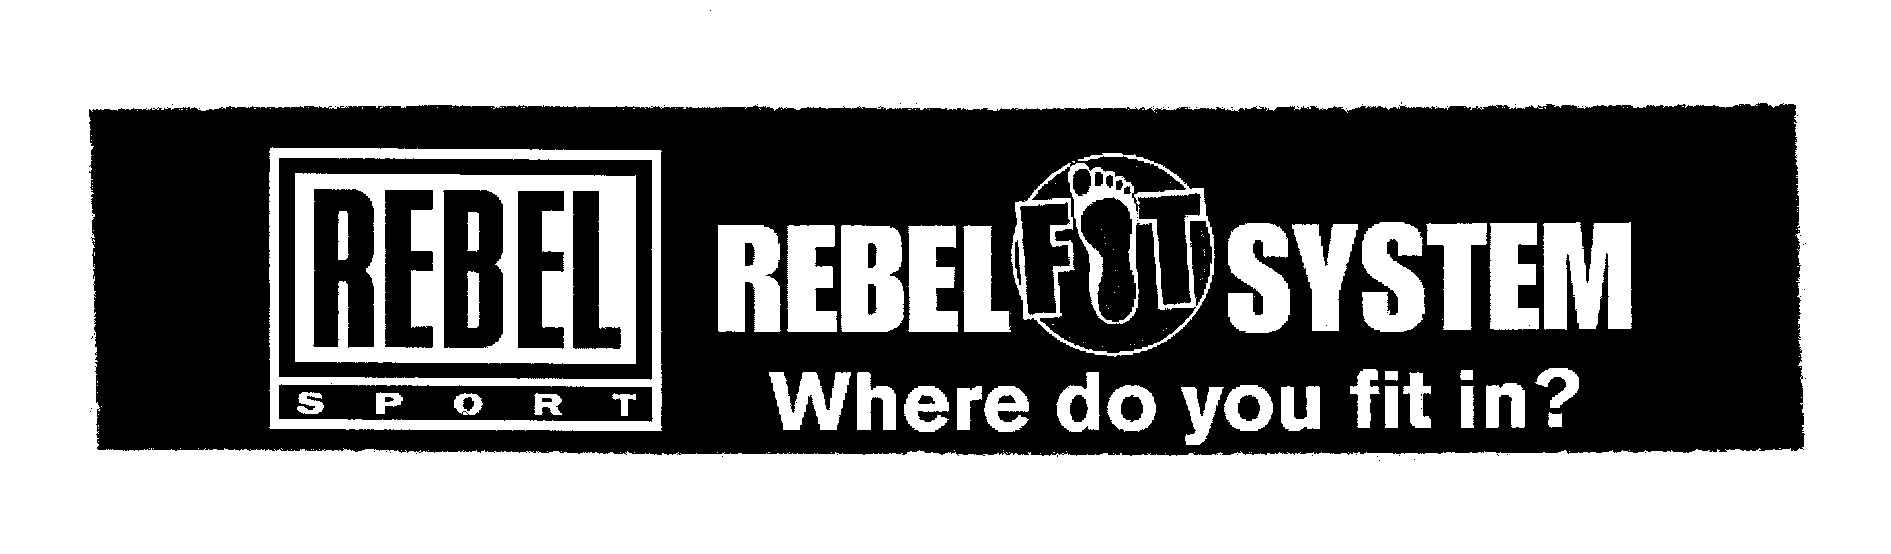 rebel sport rebel foot system where do you fit in by